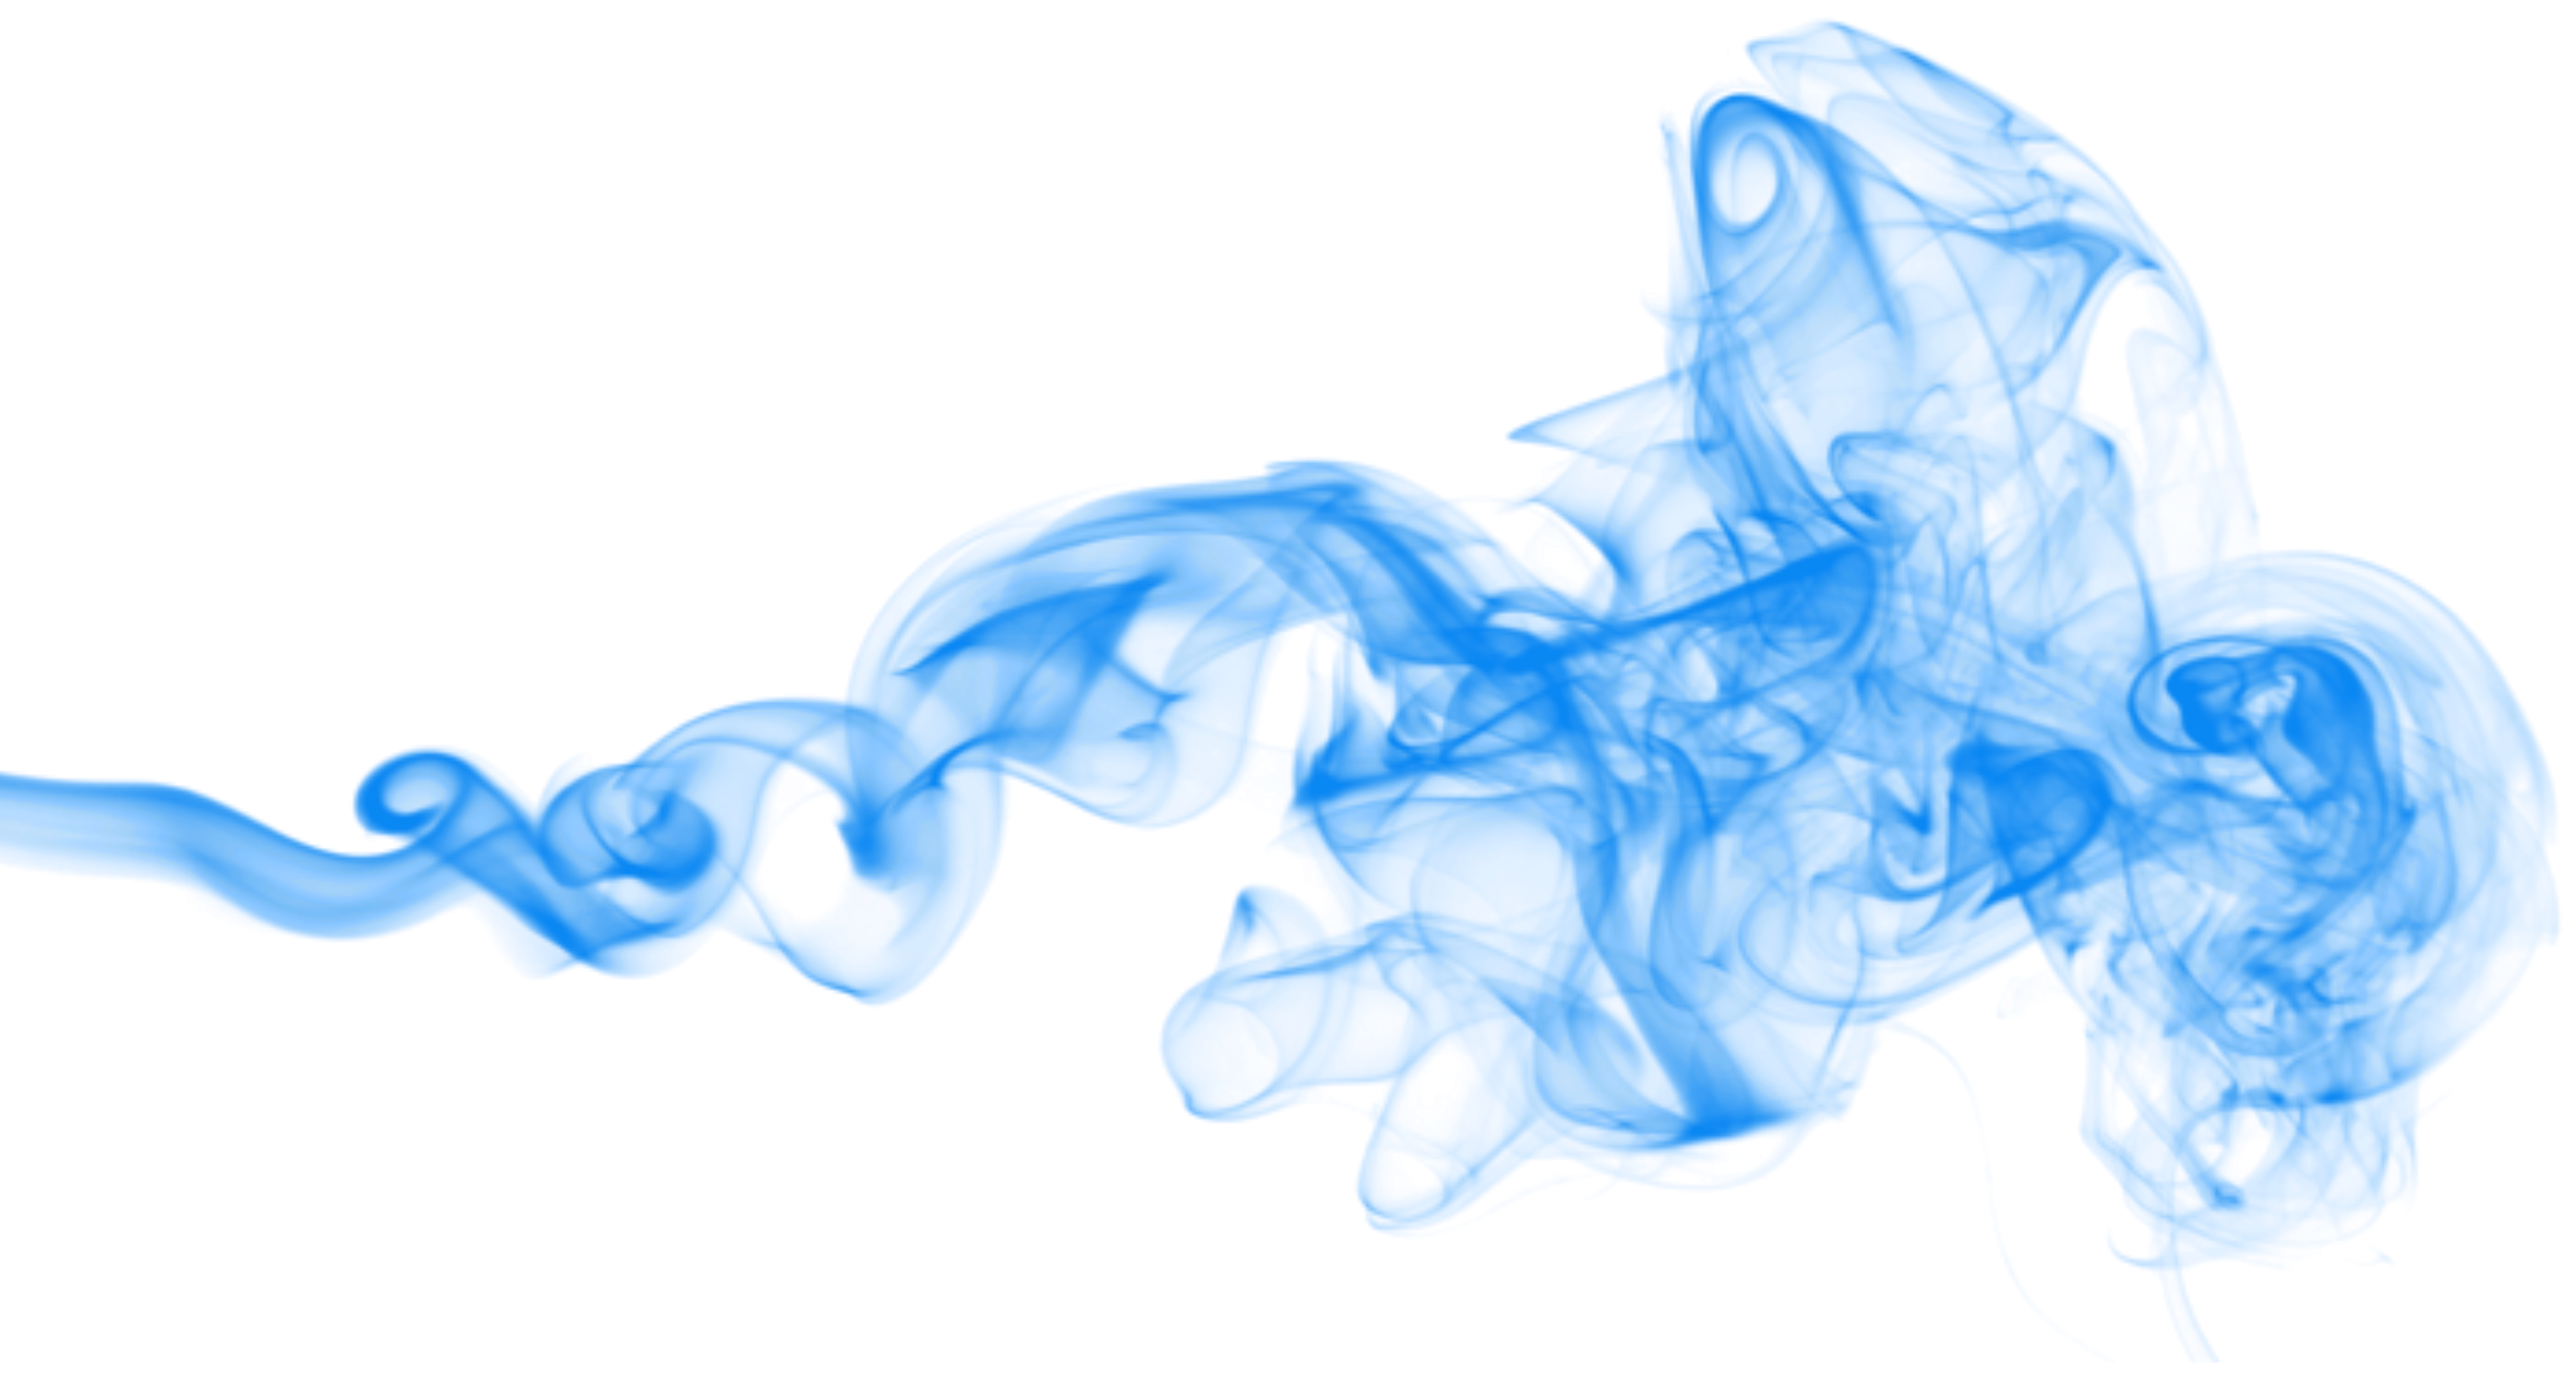 Transparent arts. Blue smoke png